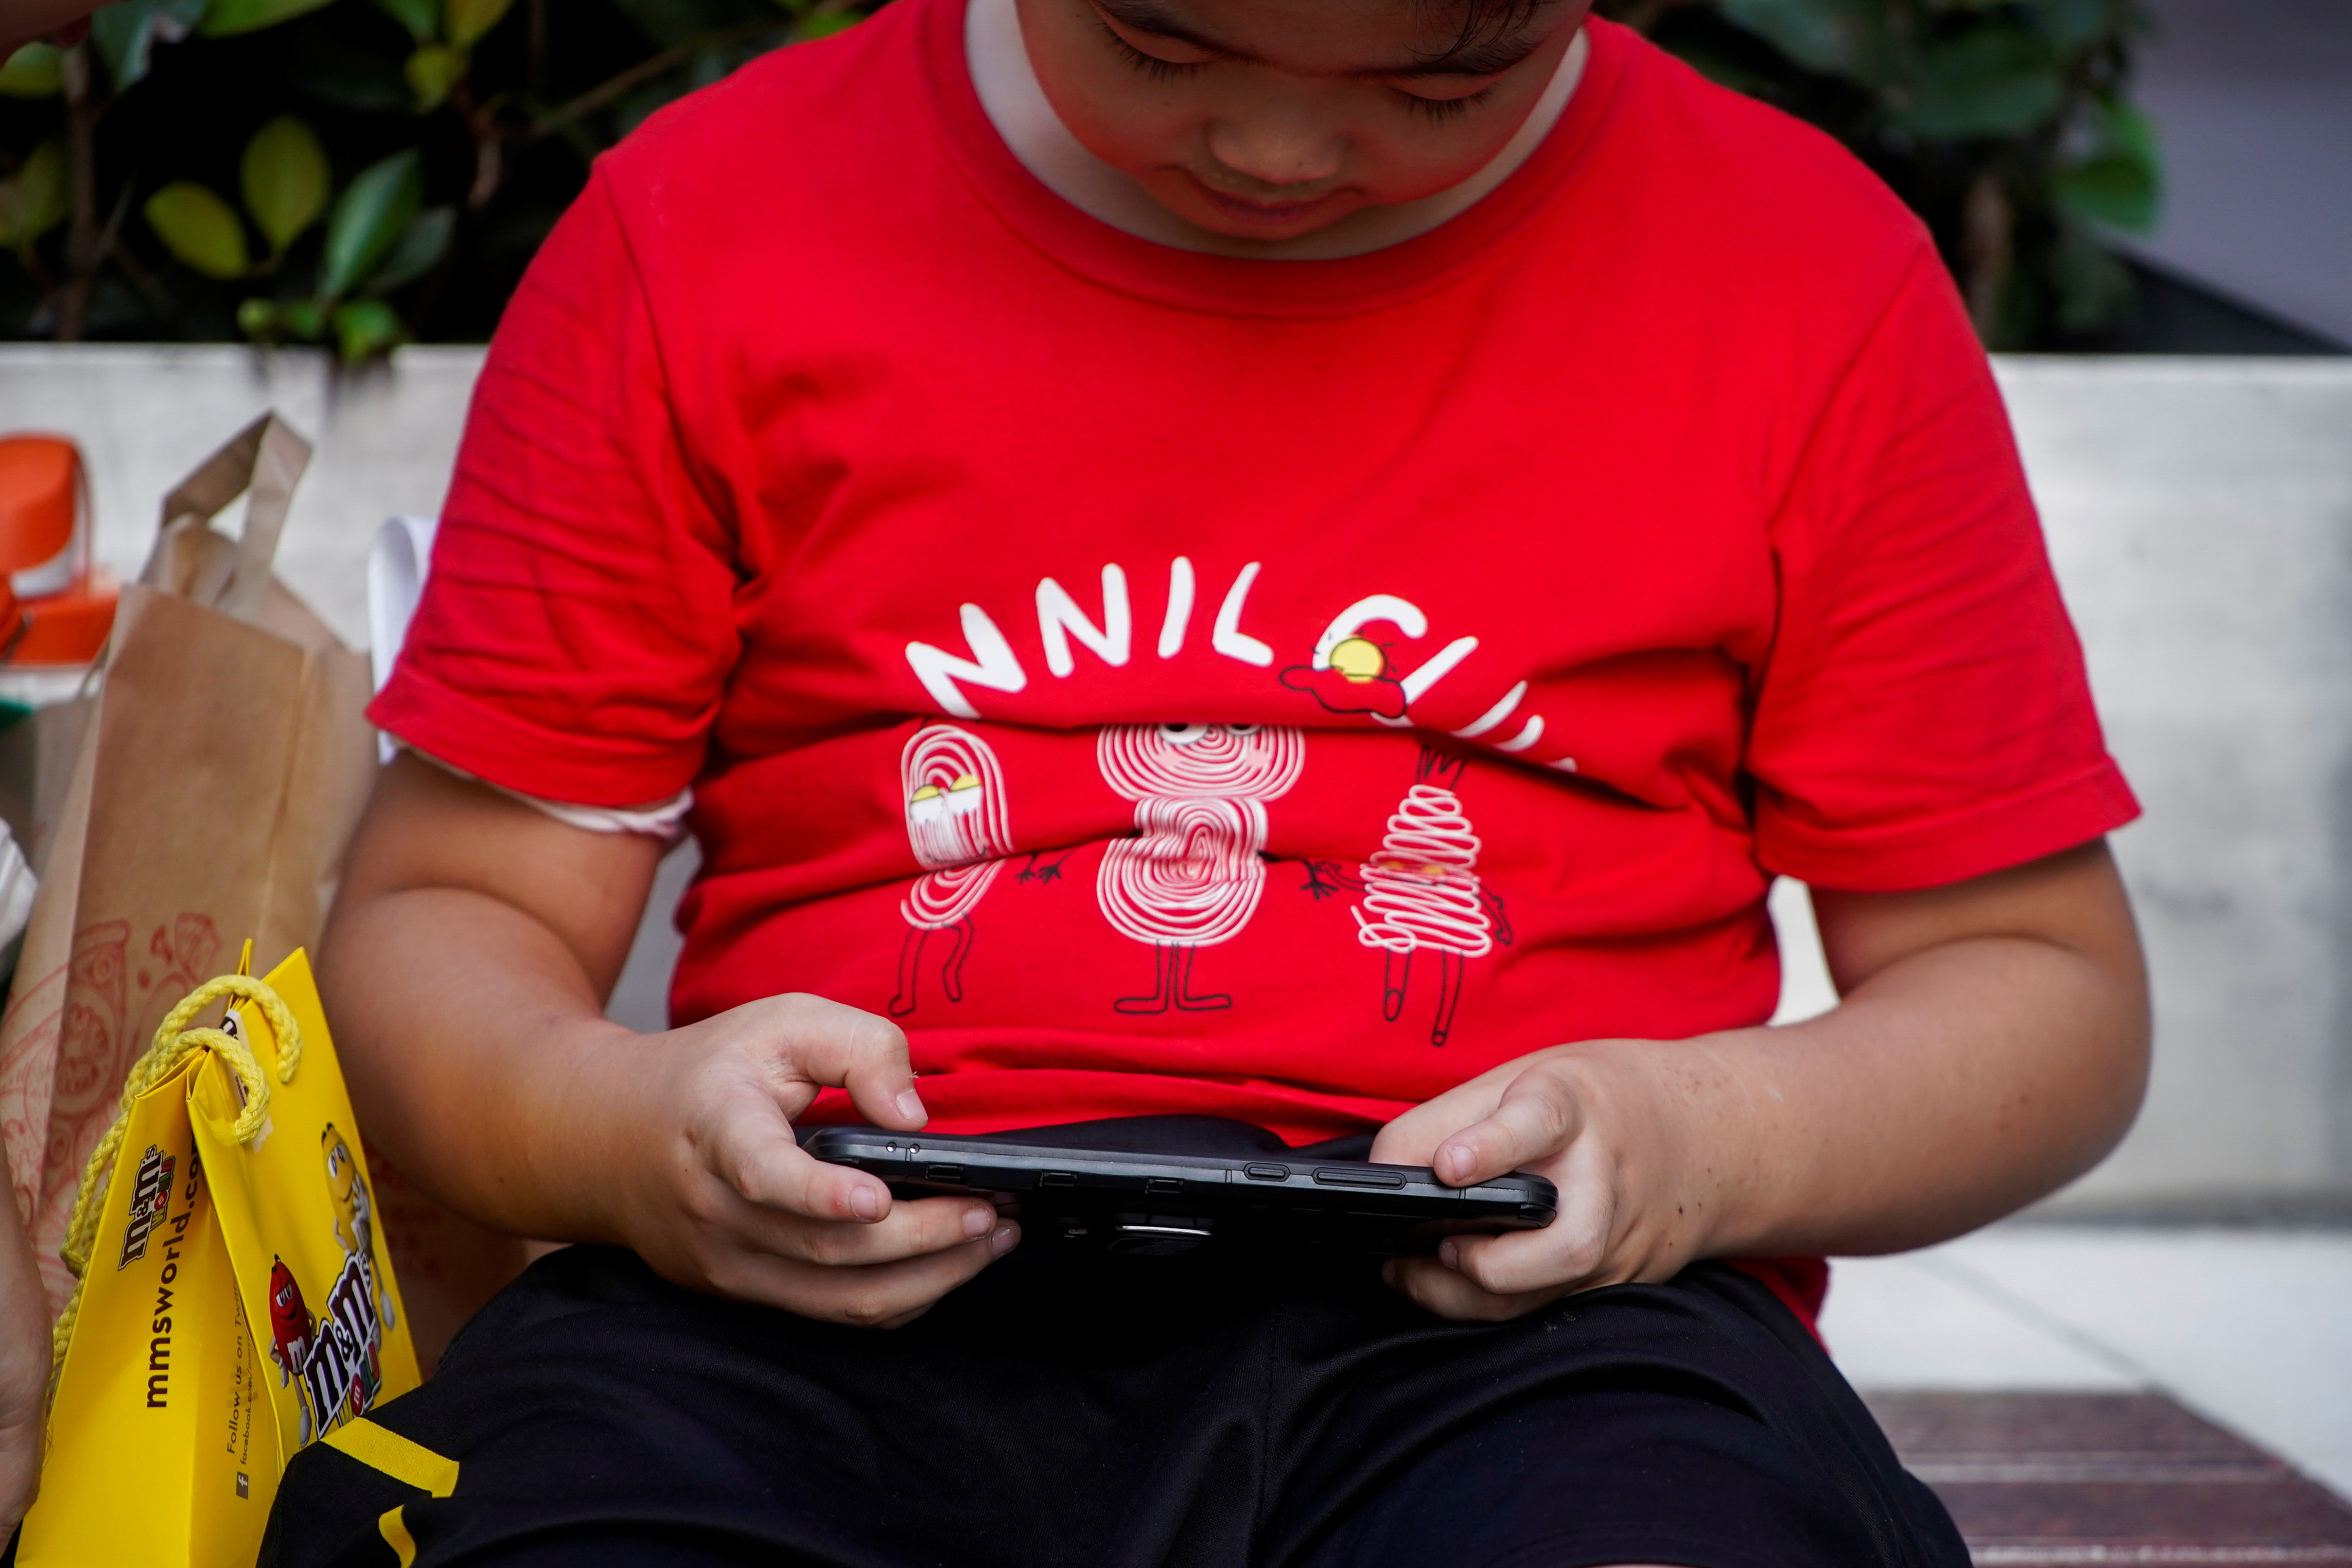 A boy plays a game on a phone on a street in Shanghai, China August 31, 2021. REUTERS/Aly Song